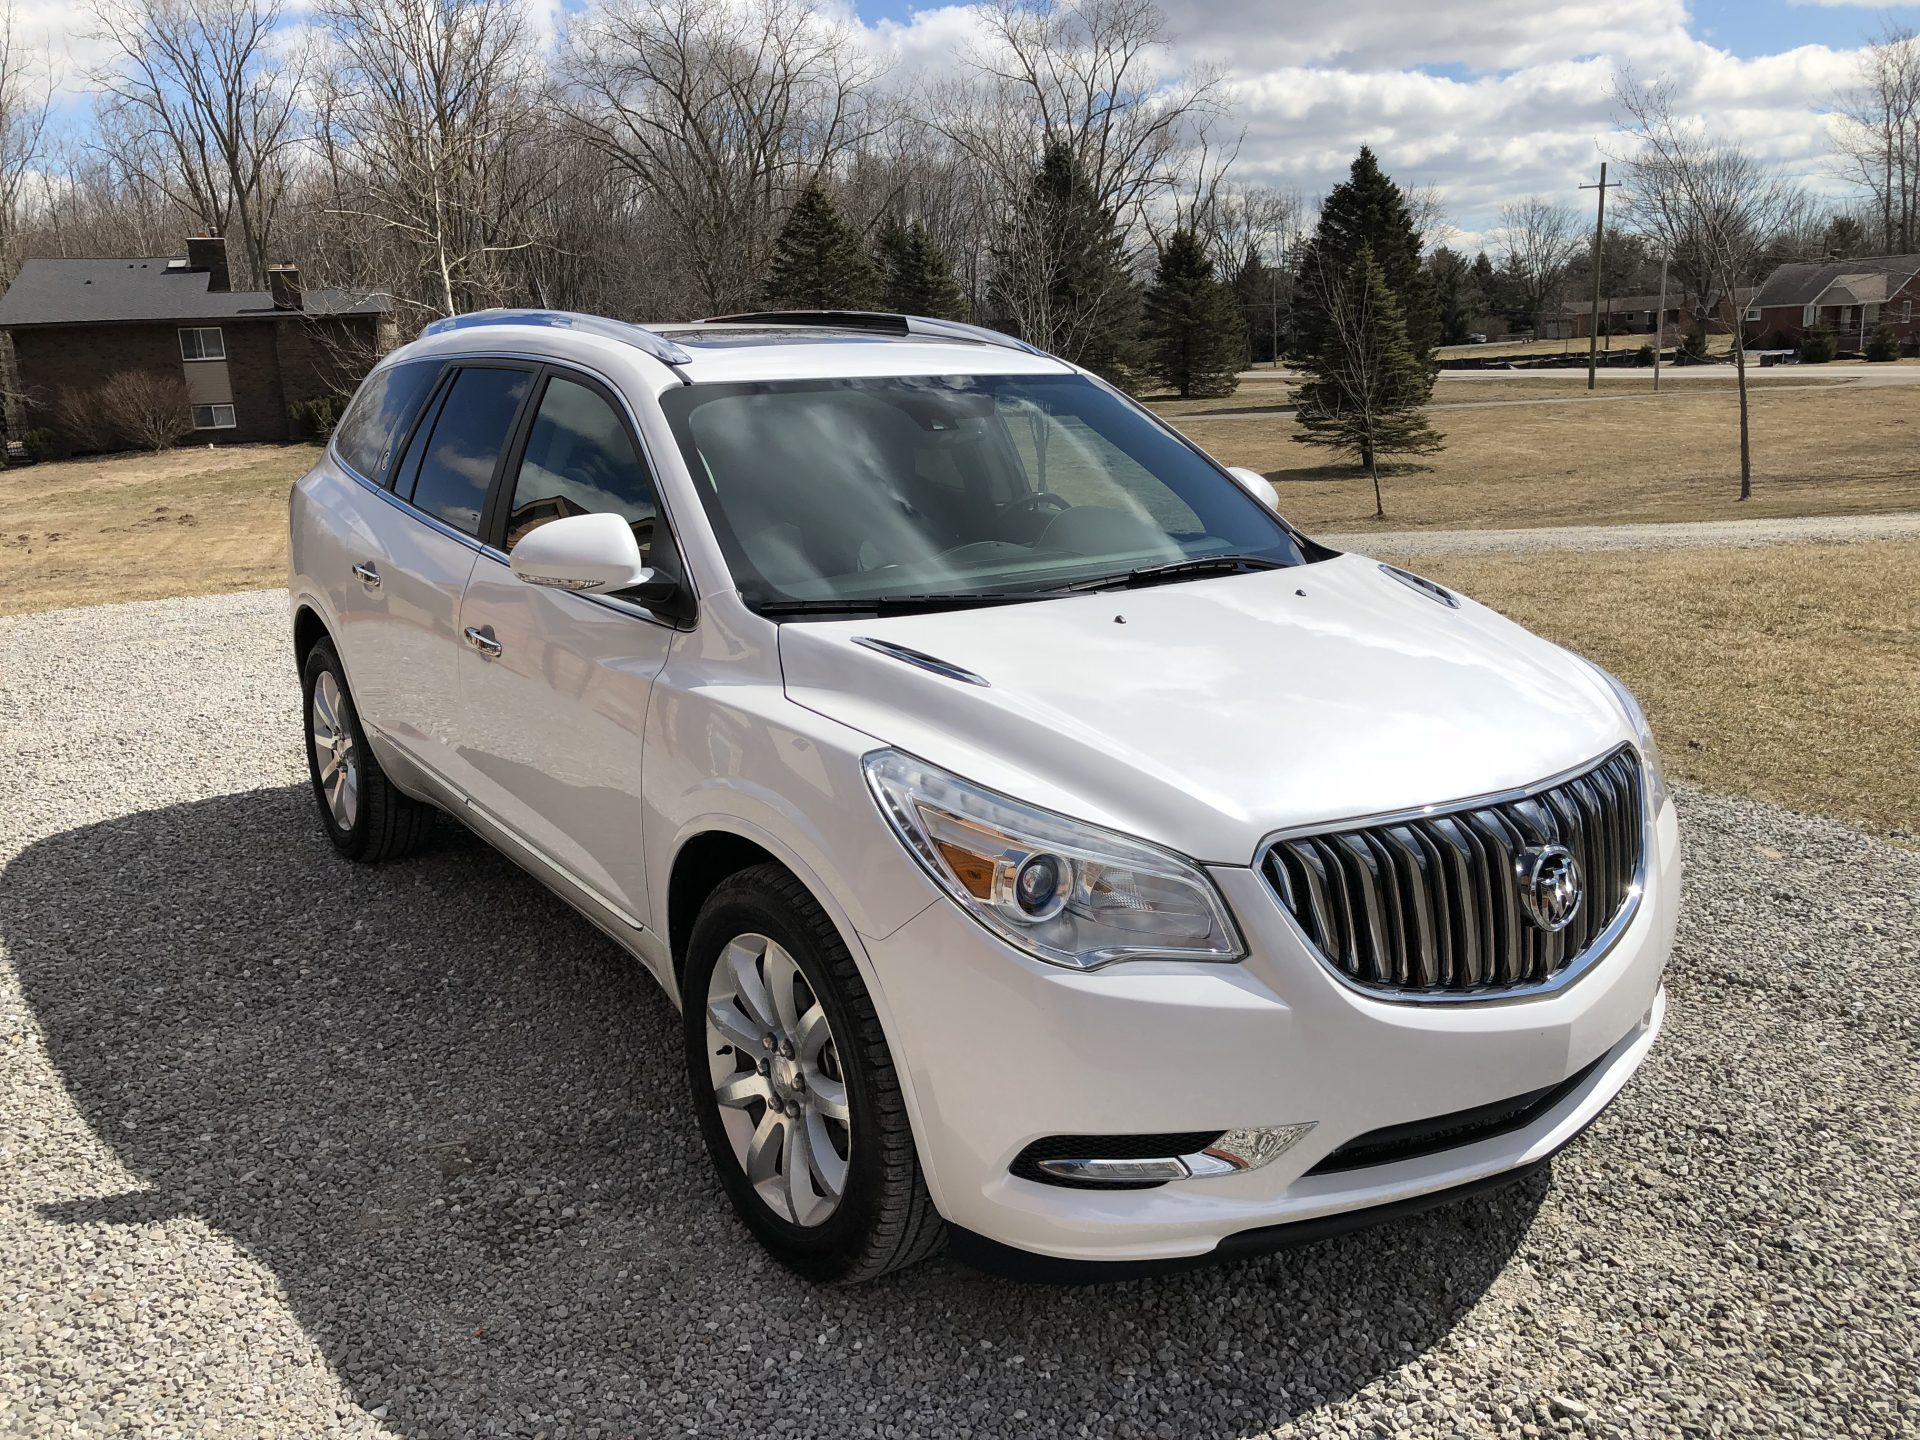 2017 buick enclave premium awd buds auto used cars for sale in michigan buds auto used. Black Bedroom Furniture Sets. Home Design Ideas